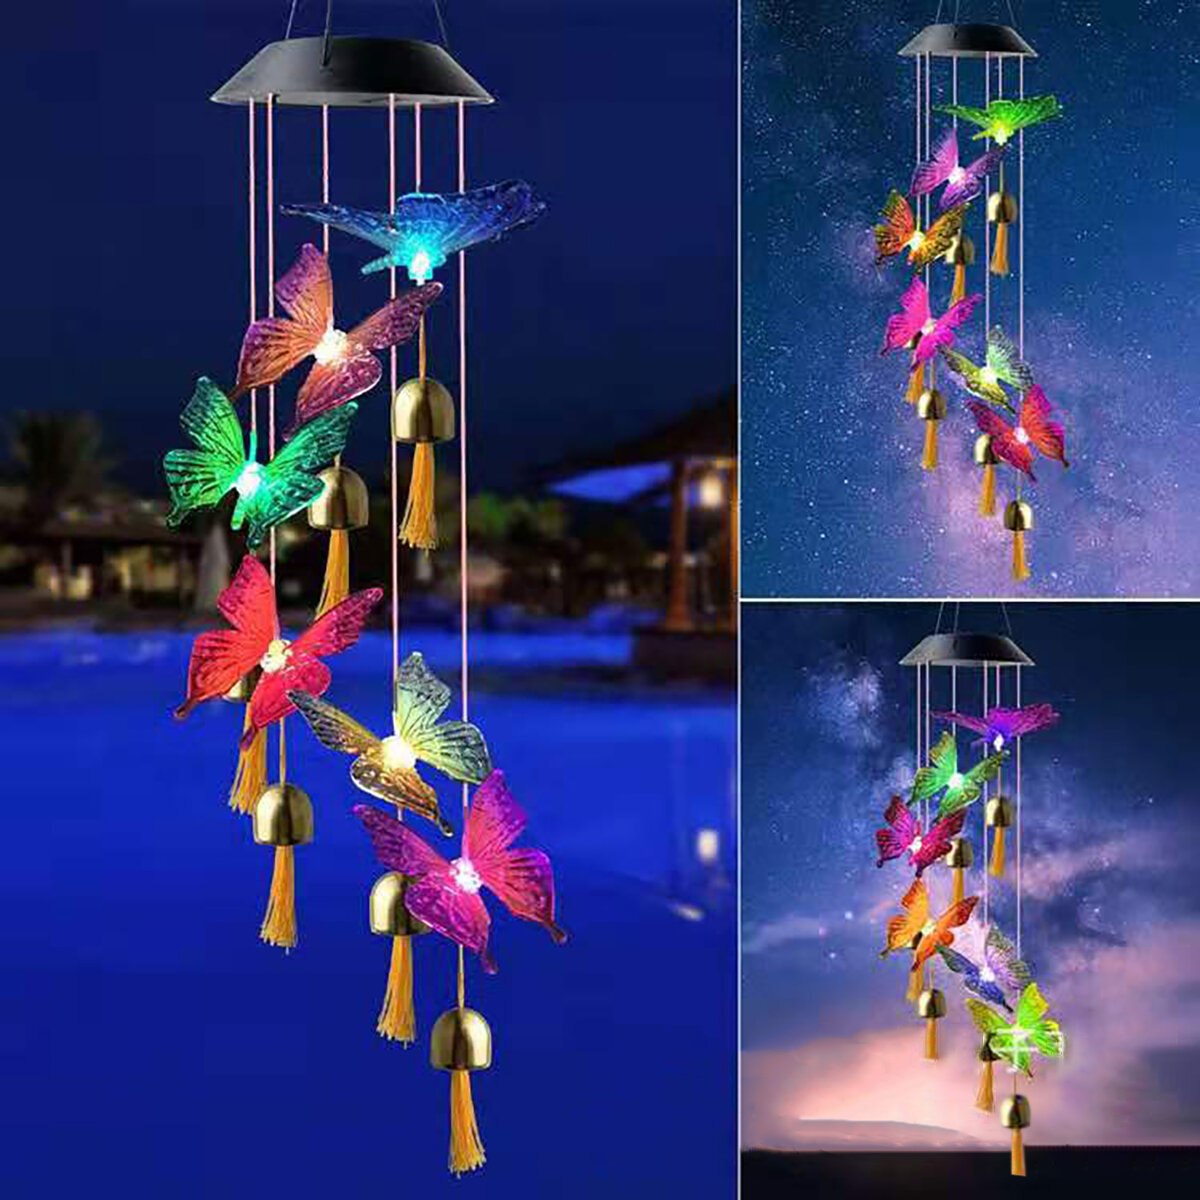 Colorful Solar Bell Wind Chime Light Automatic Waterproof Solar Powered Wind Chime Lamp - Dragonfly